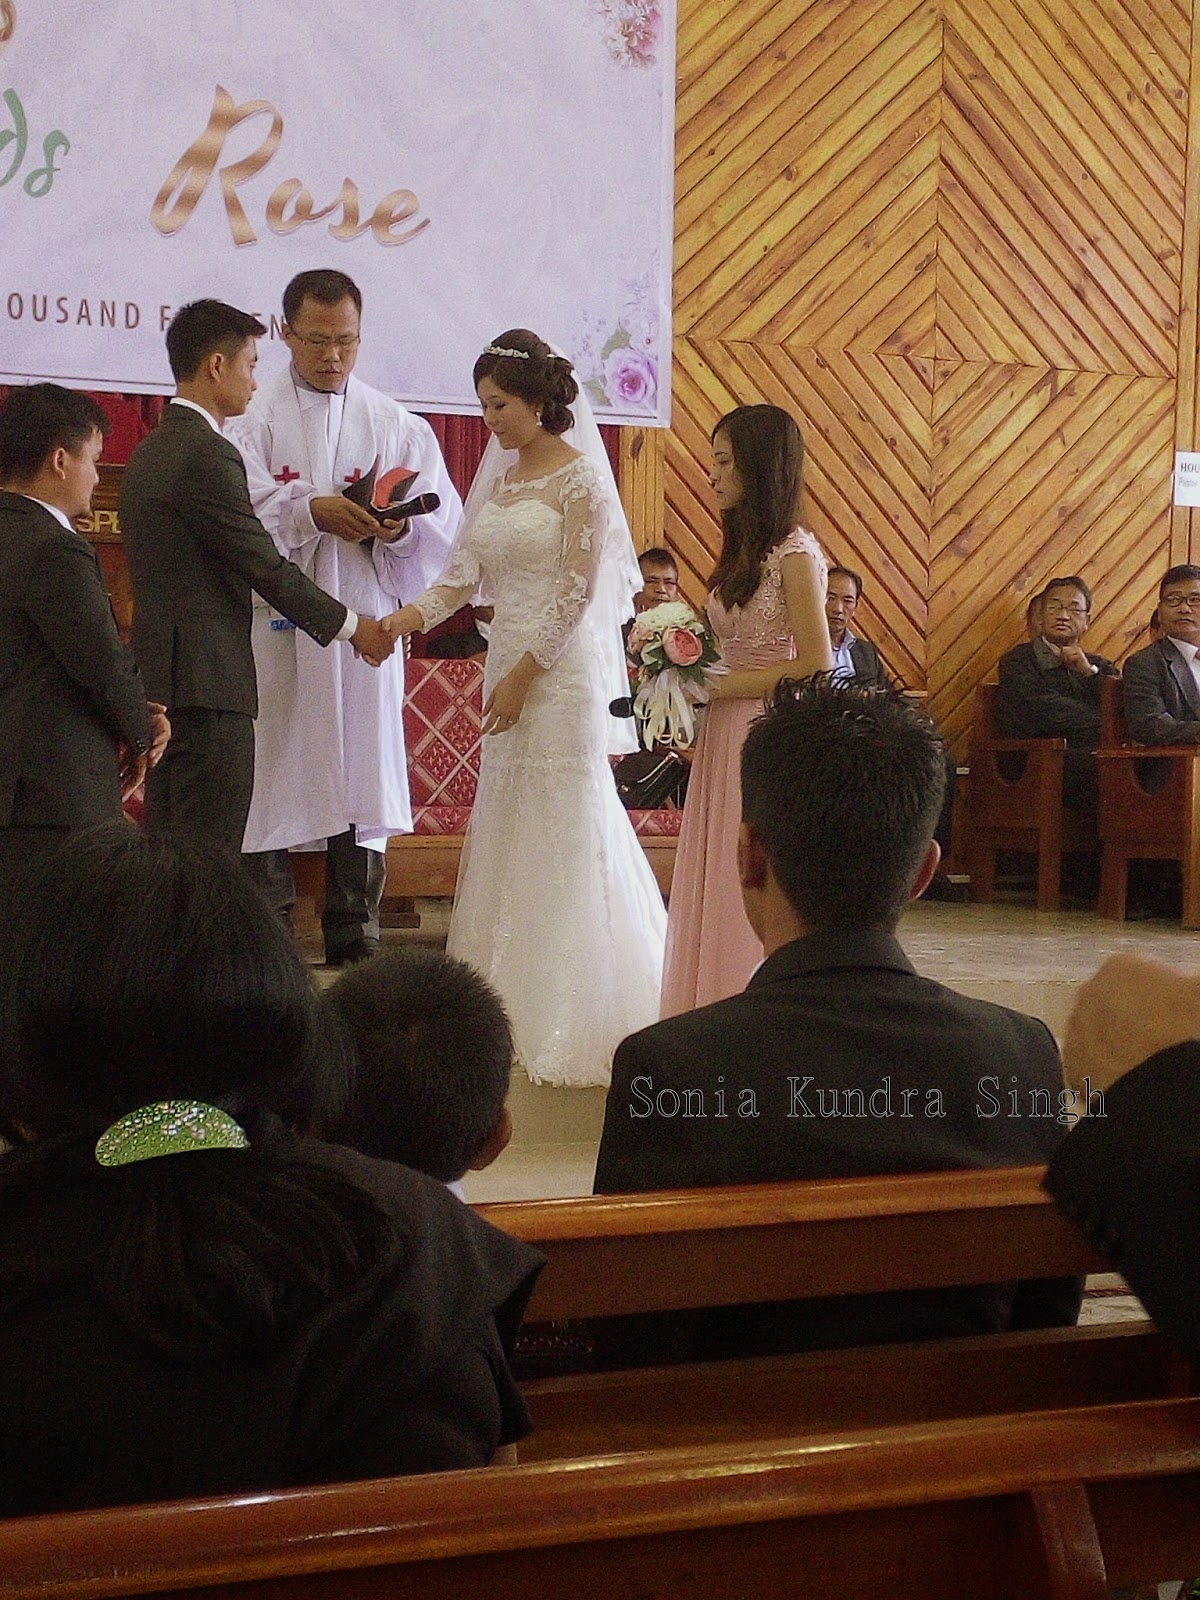 half a cup of happyness a christian manipuri wedding a photo essay pledging to each other